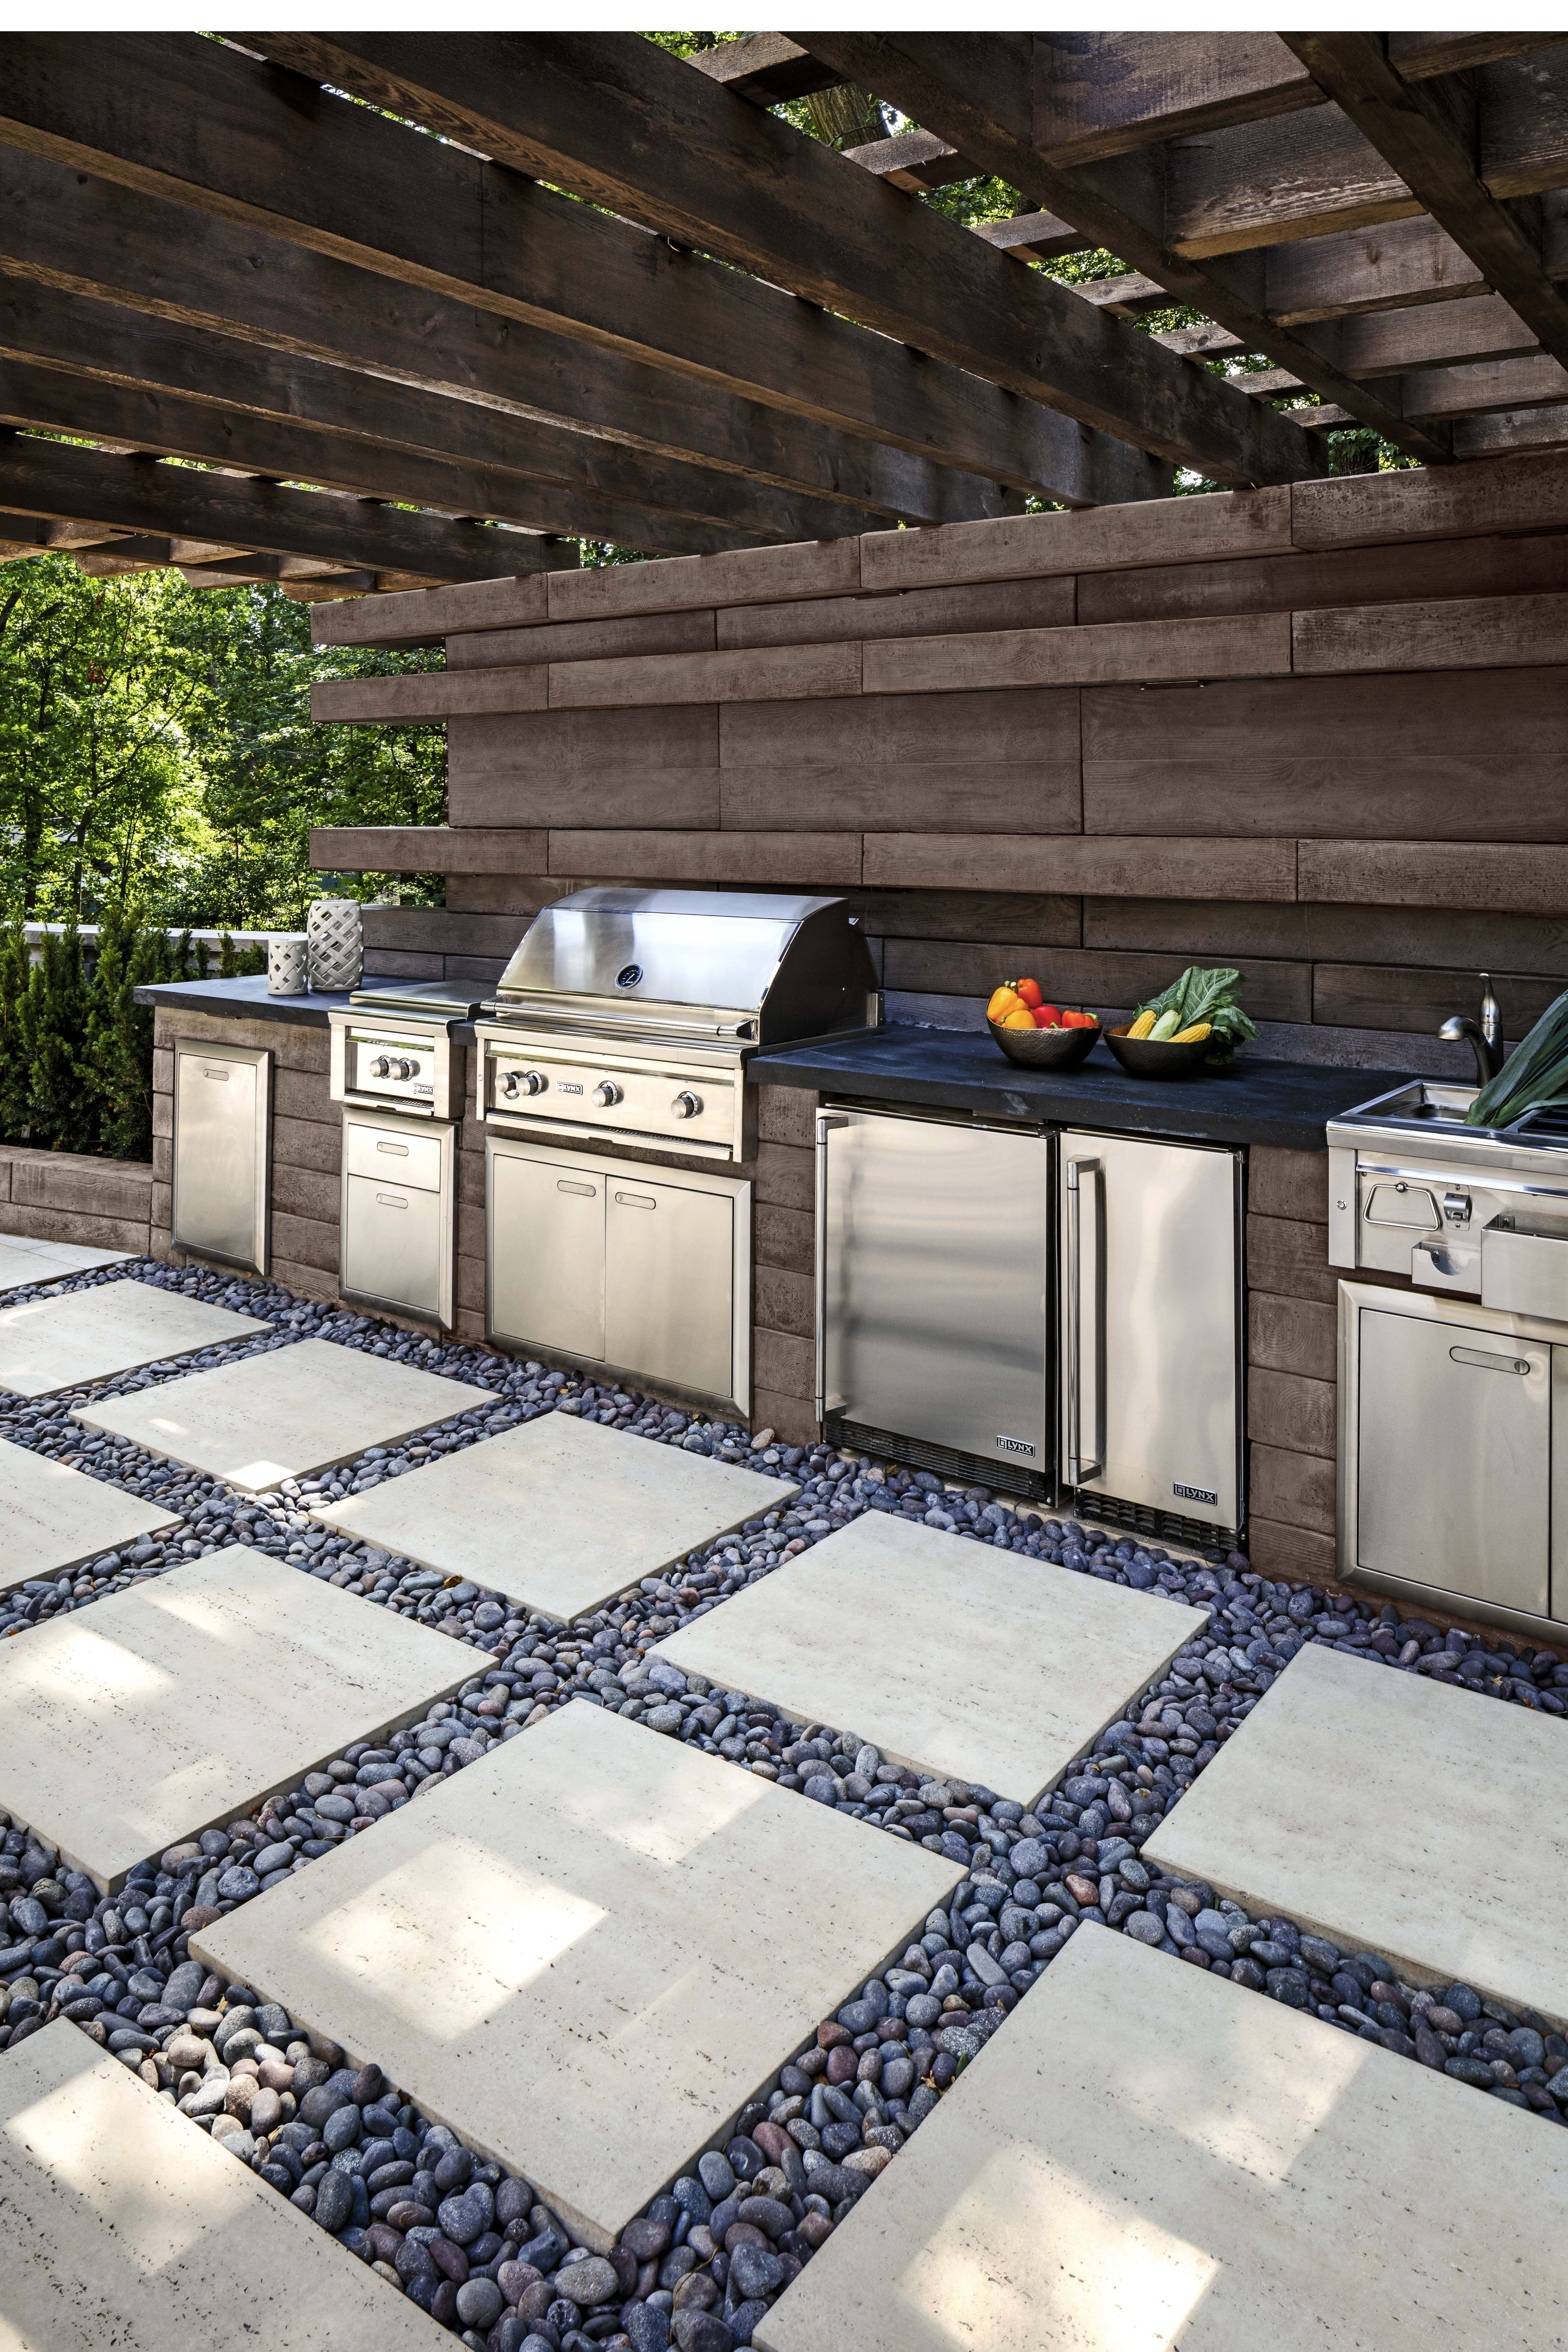 Looking For A An Outdoor Kitchen Idea For This Landscape Project The Borealis Wall Was Used For T Diy Outdoor Kitchen Outdoor Kitchen Design Backyard Kitchen